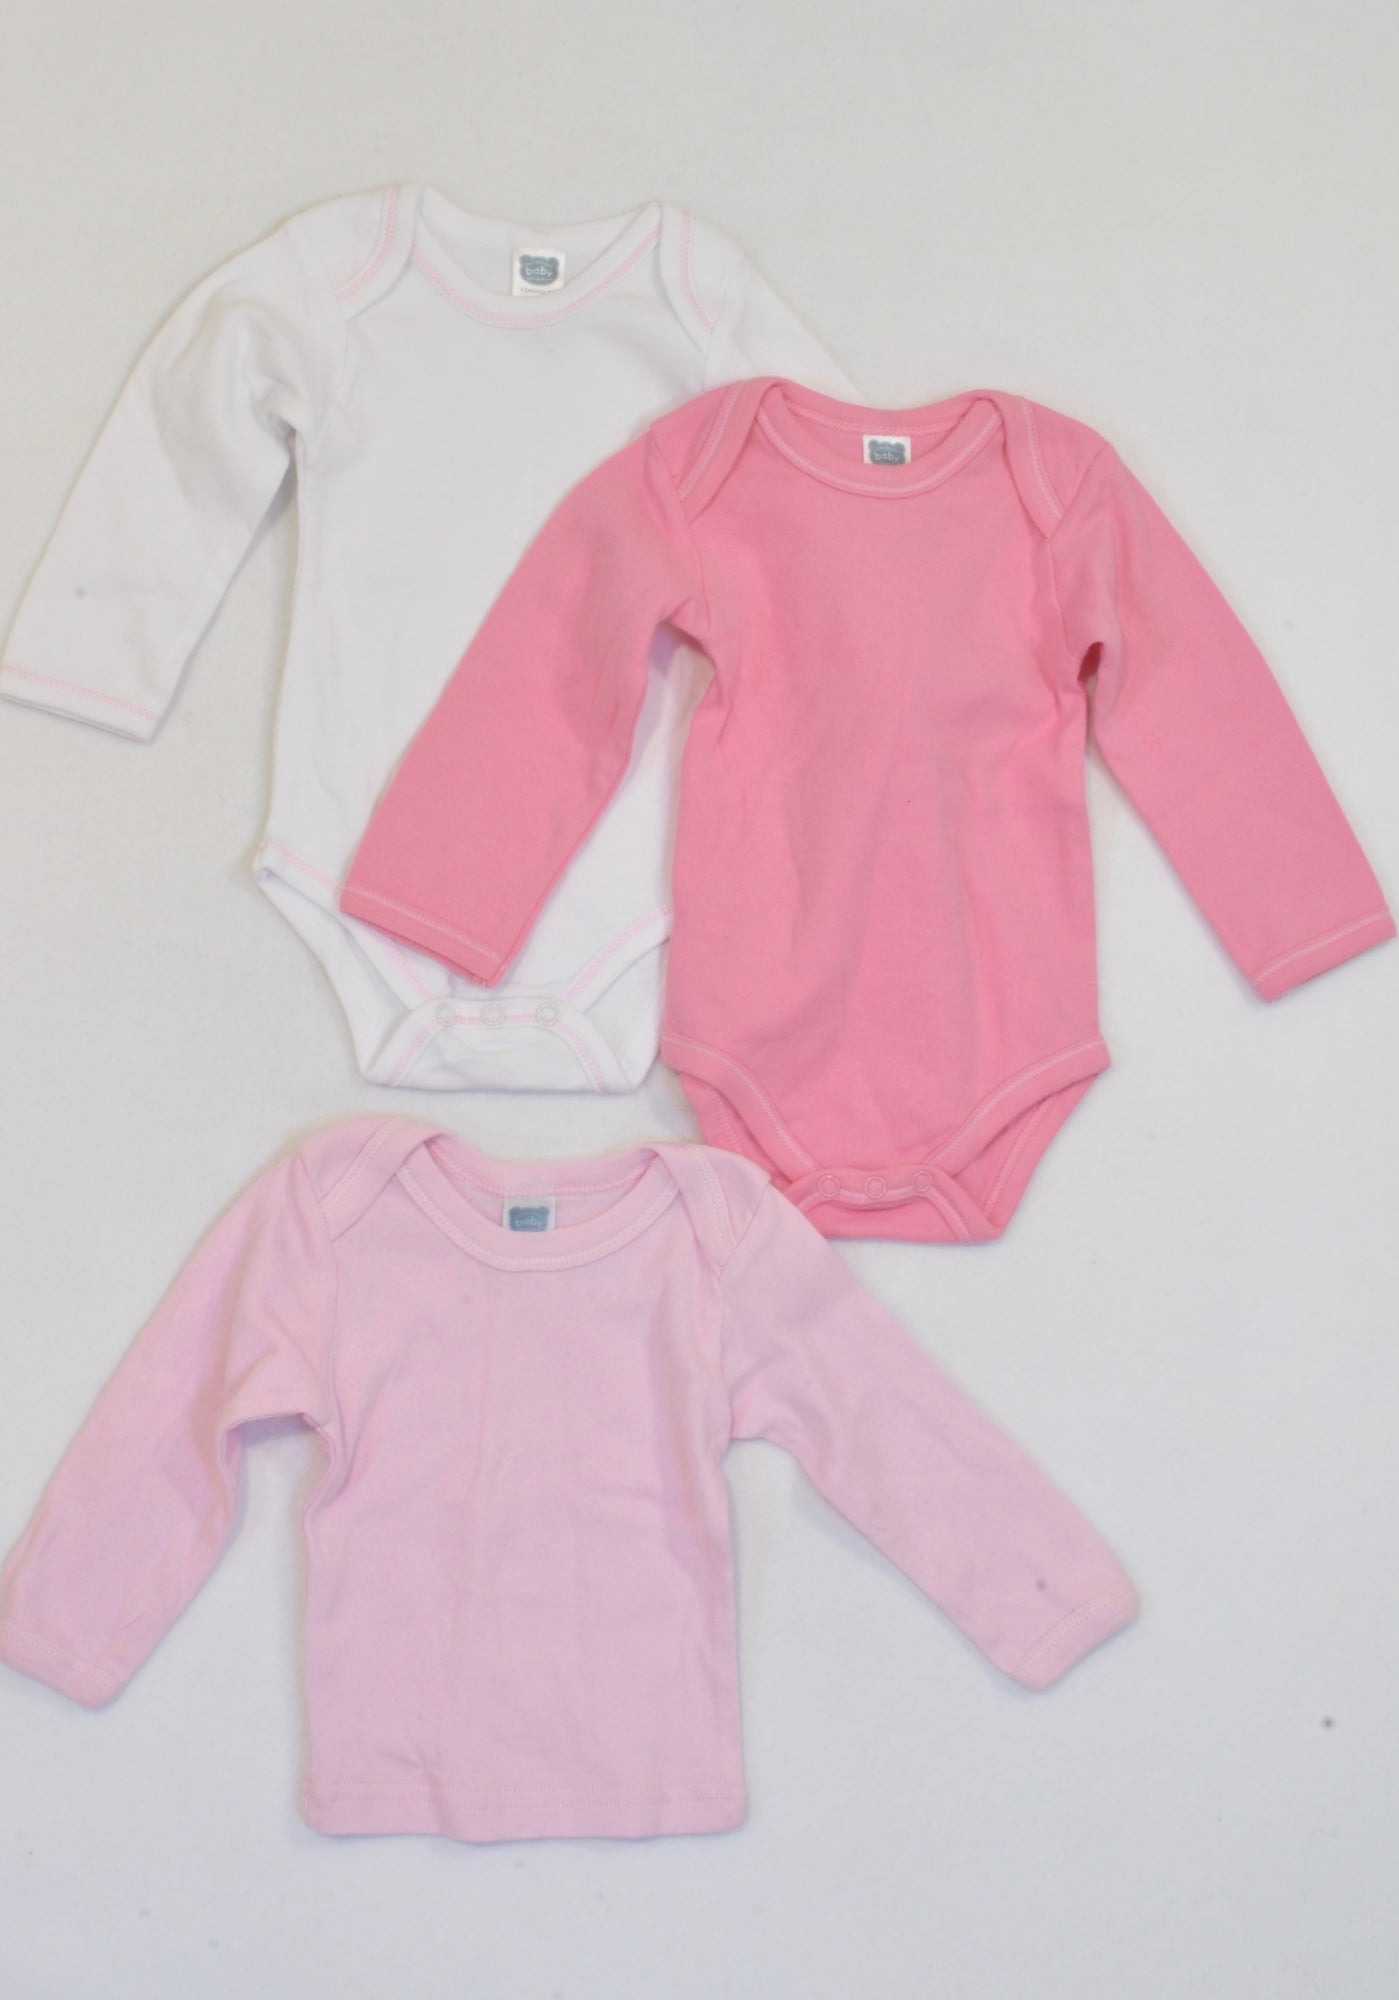 Ackermans 3 Pack Pink T-Shirt & Baby Grows Girls 0-3 months